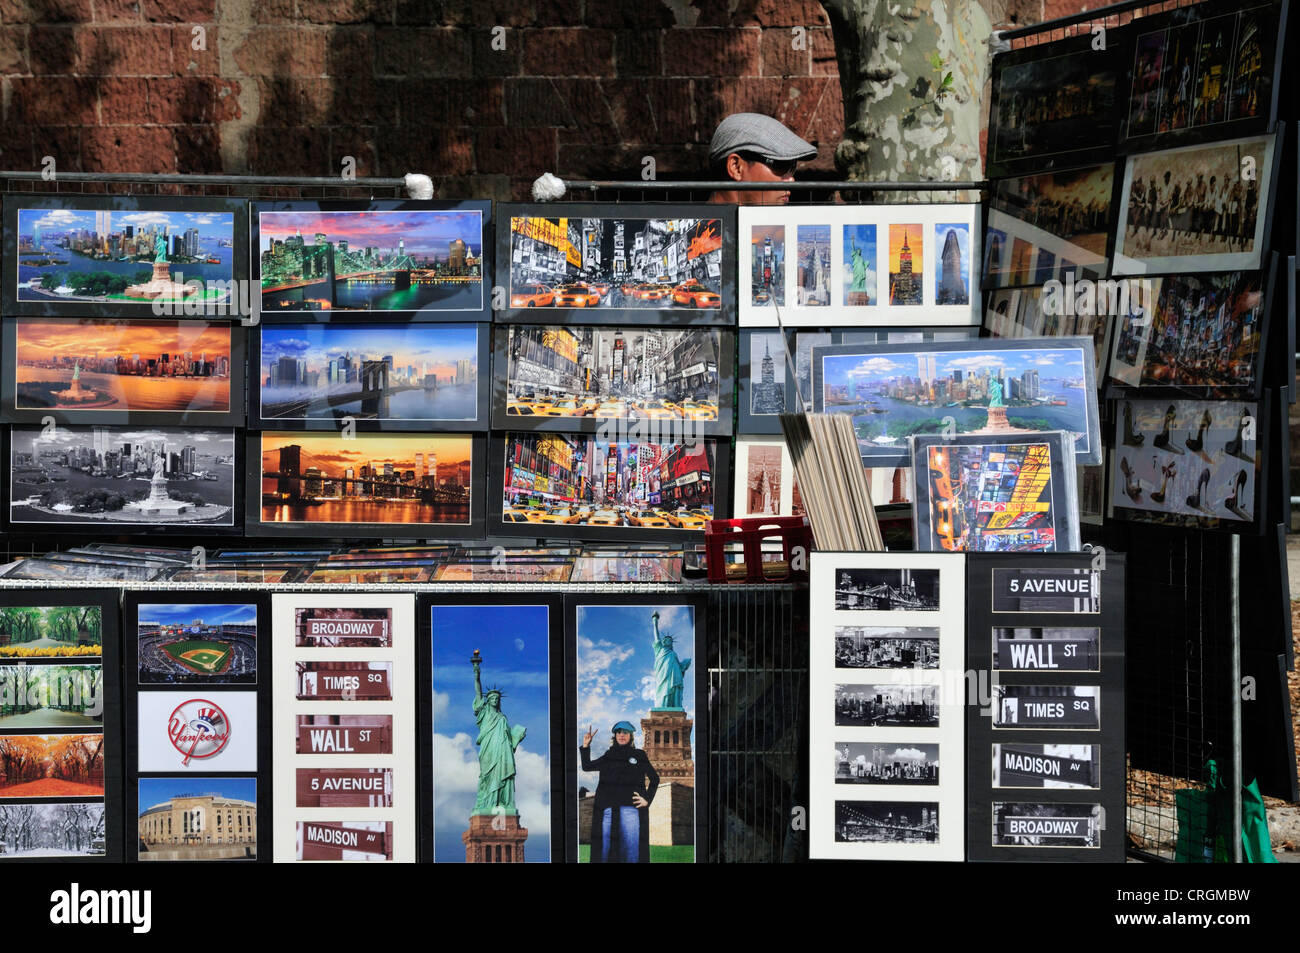 A man stands behind a large display of photos, signs and other souvenirs of New York at Battery Park - Stock Image